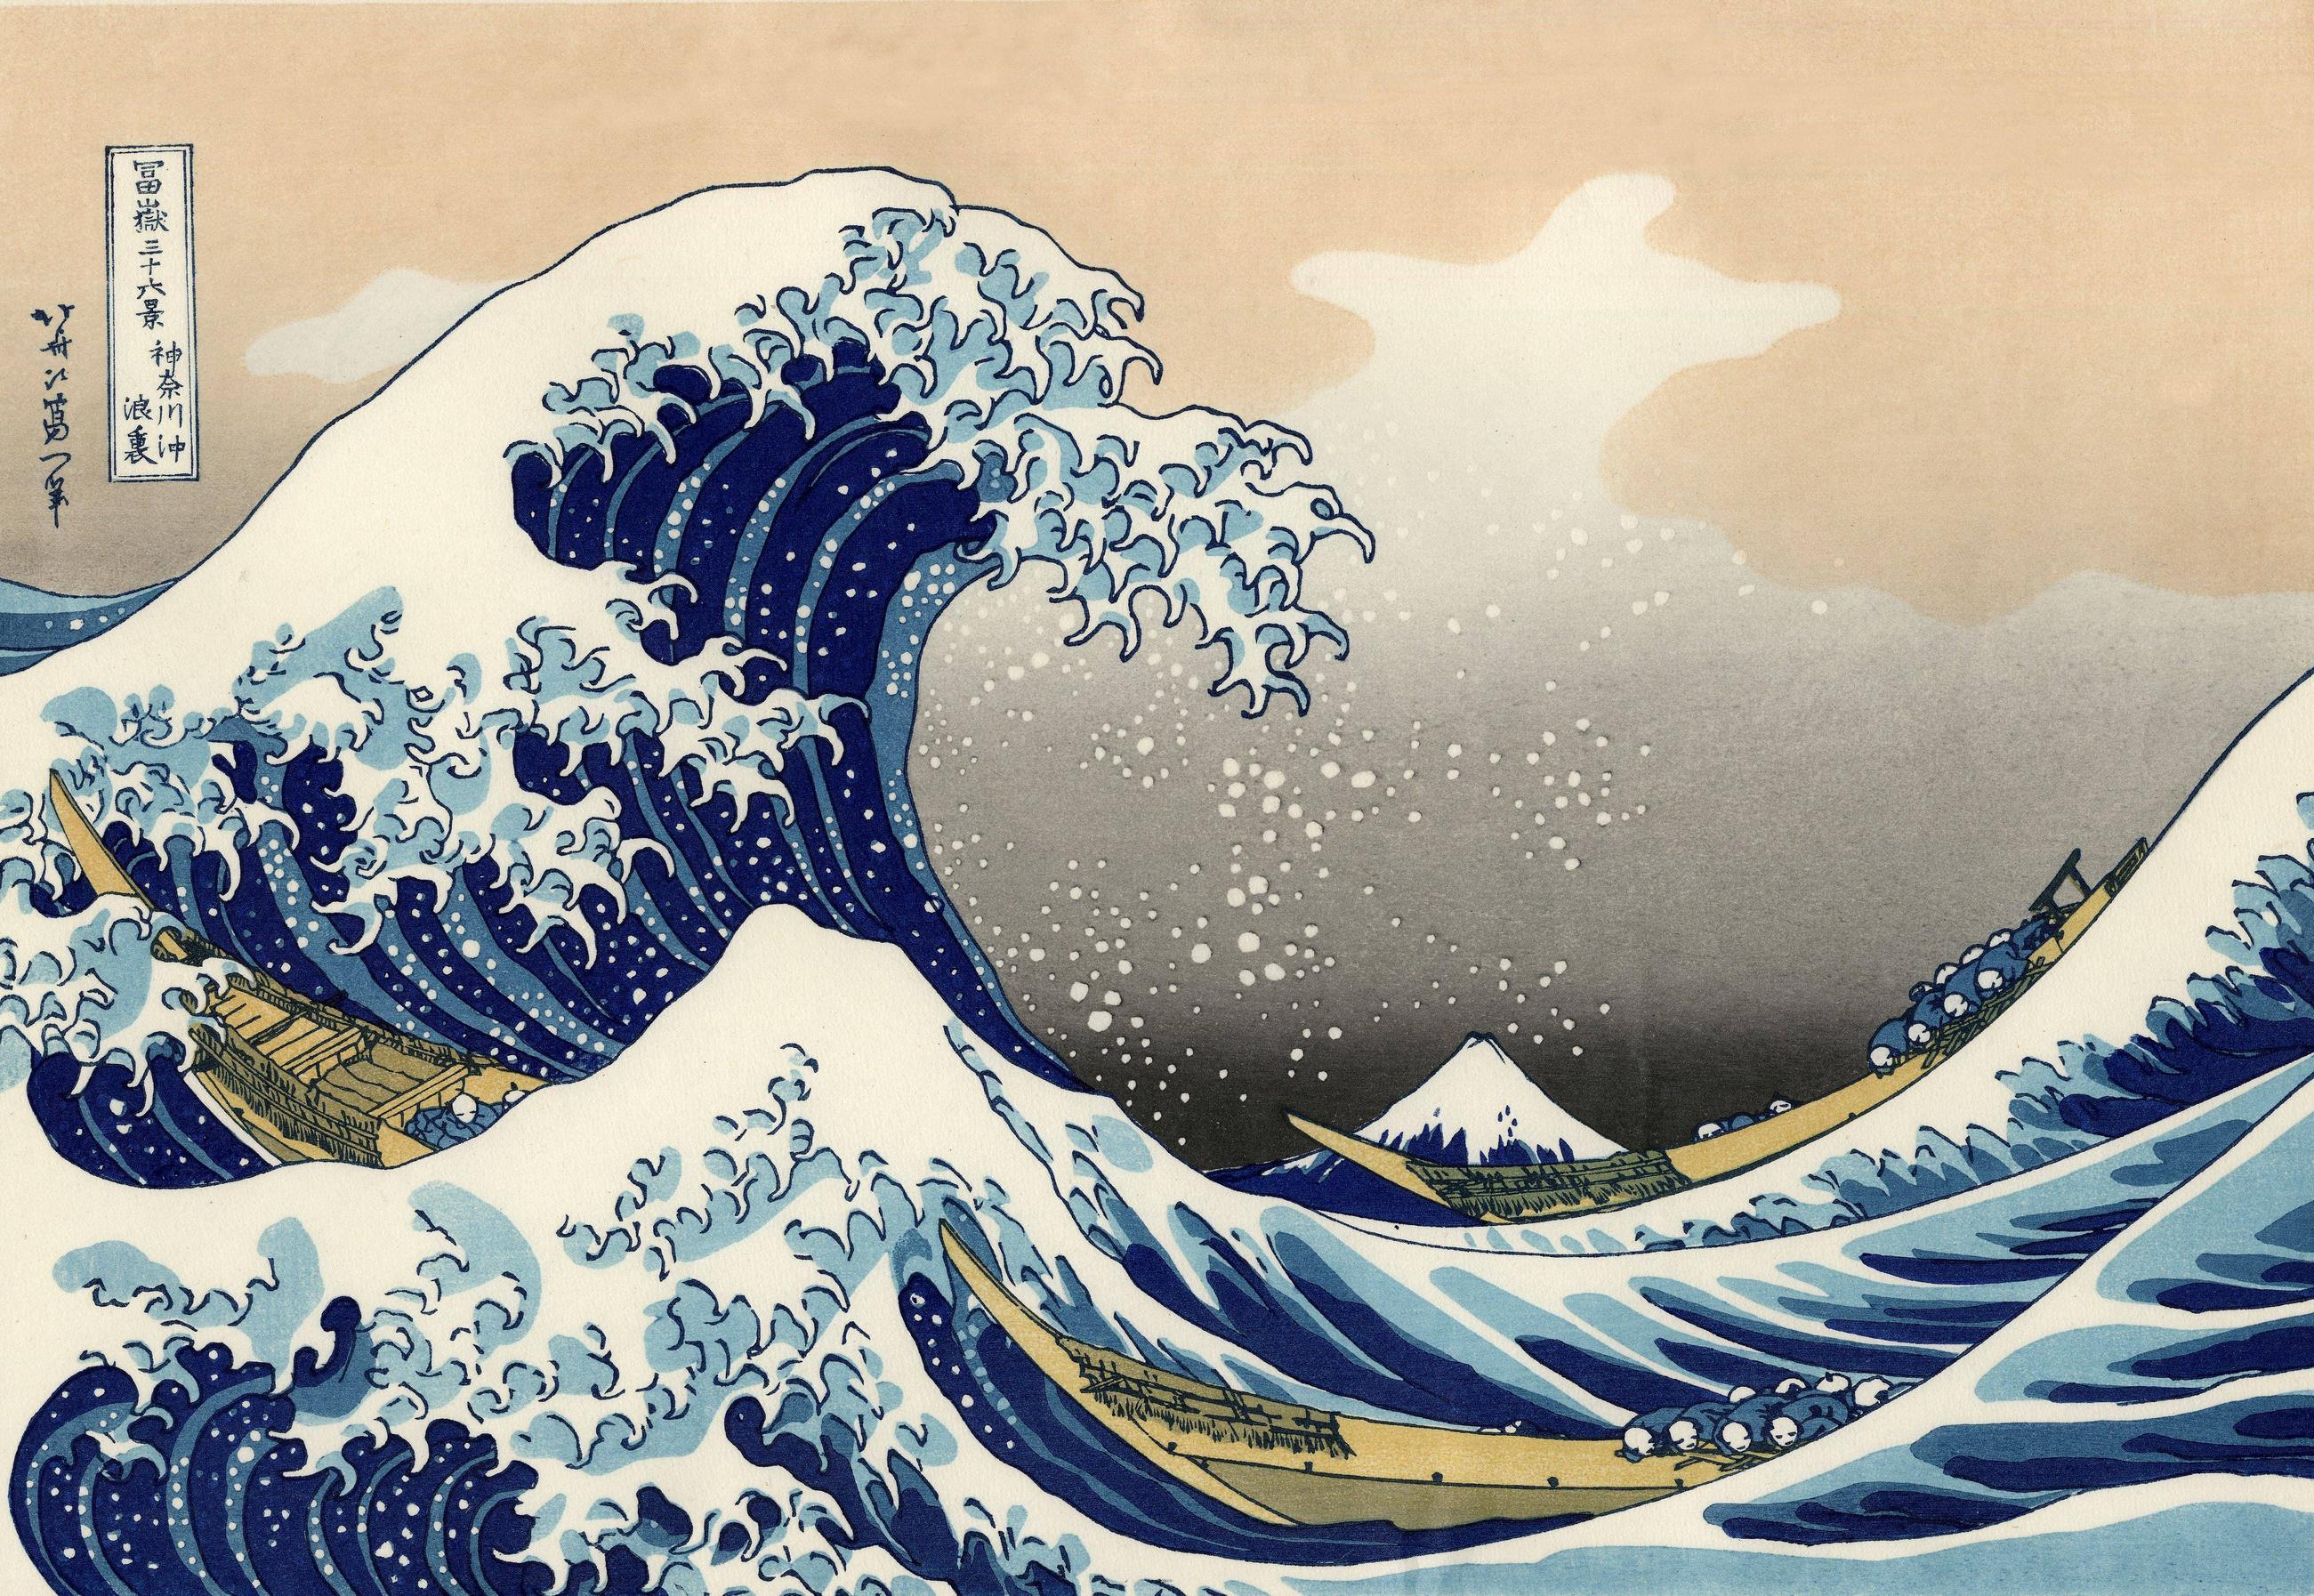 The Great Wave Wallpaper